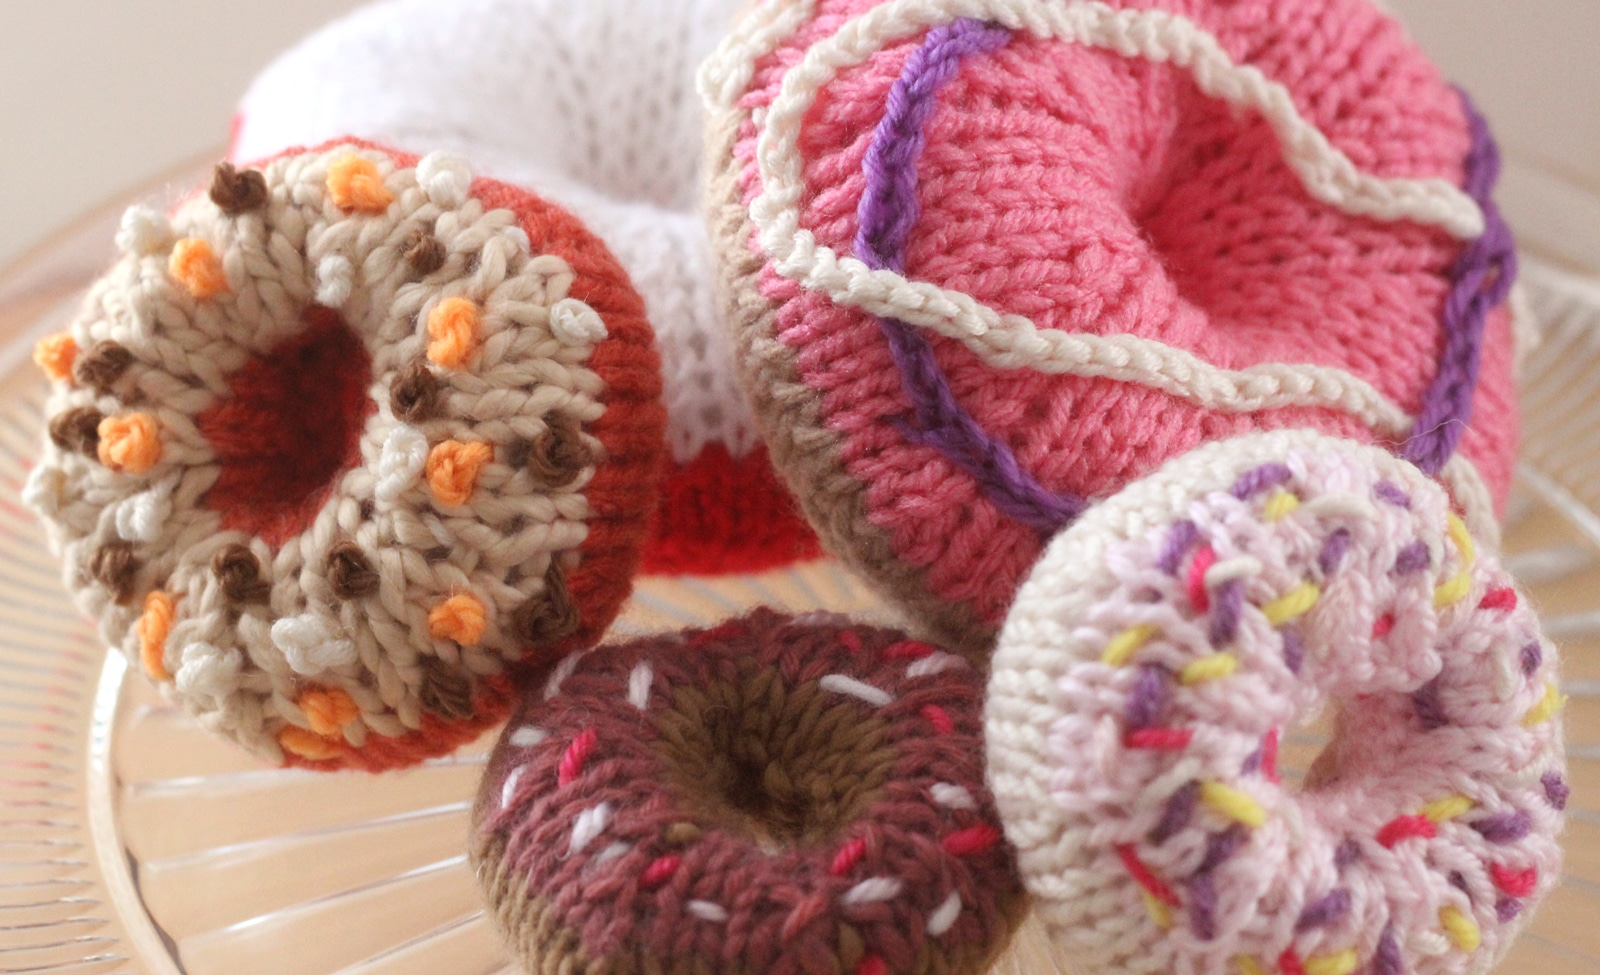 Decorating Knitted Desserts: Embroidery & Crochet Chains with Studio Knit